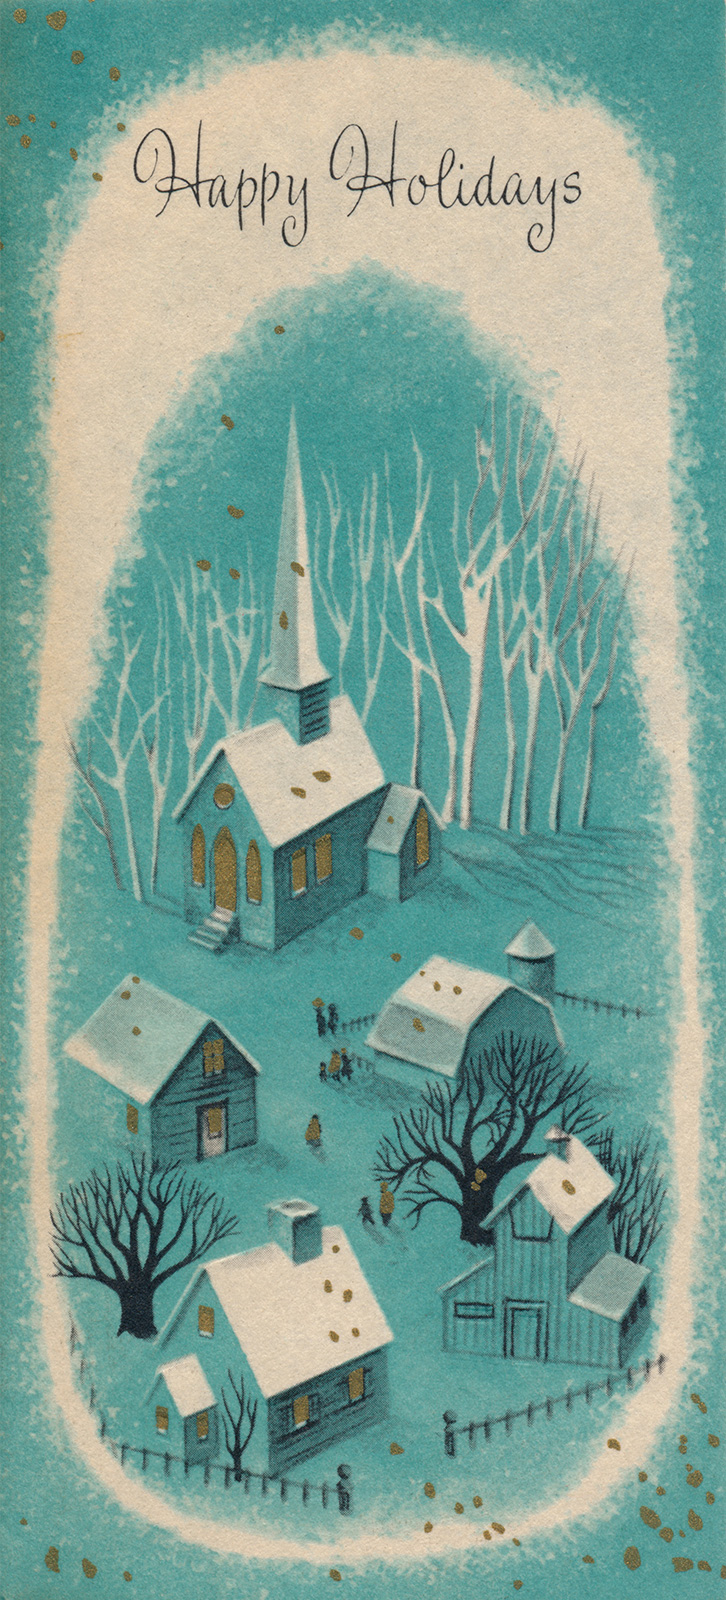 "A turquoise card features a small village with snow capped roofs, and white, leafless trees. Above it reads ""Happy Holidays"""